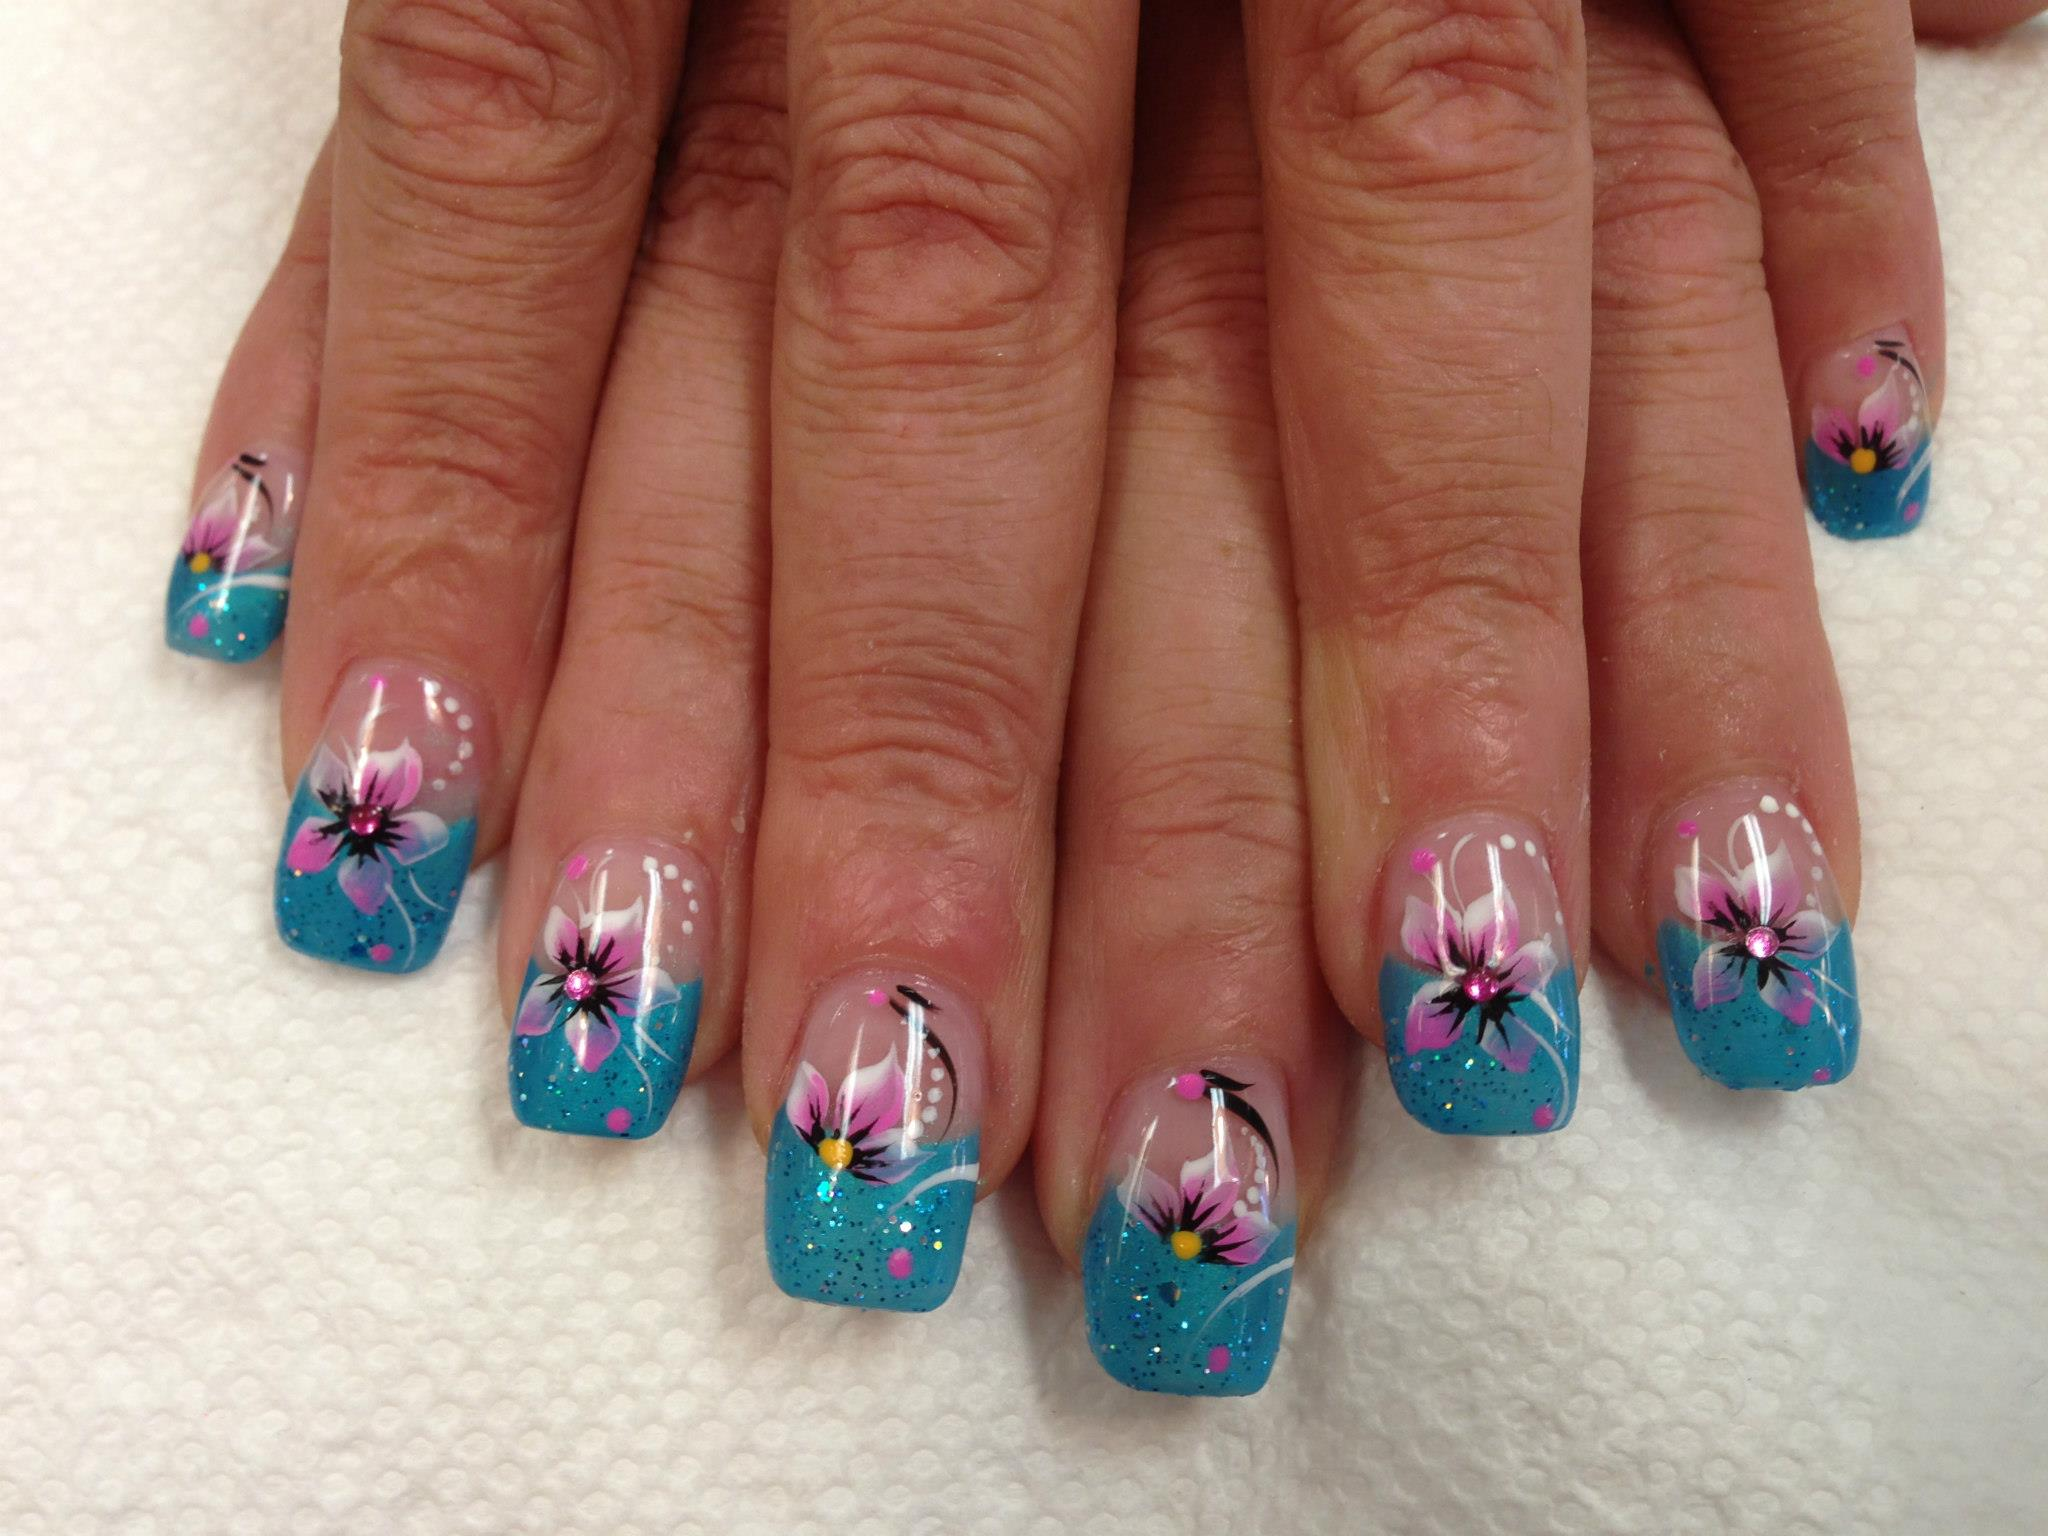 Lily Of The Ocean Nail Art Designs By Top Nails Clarksville Tn